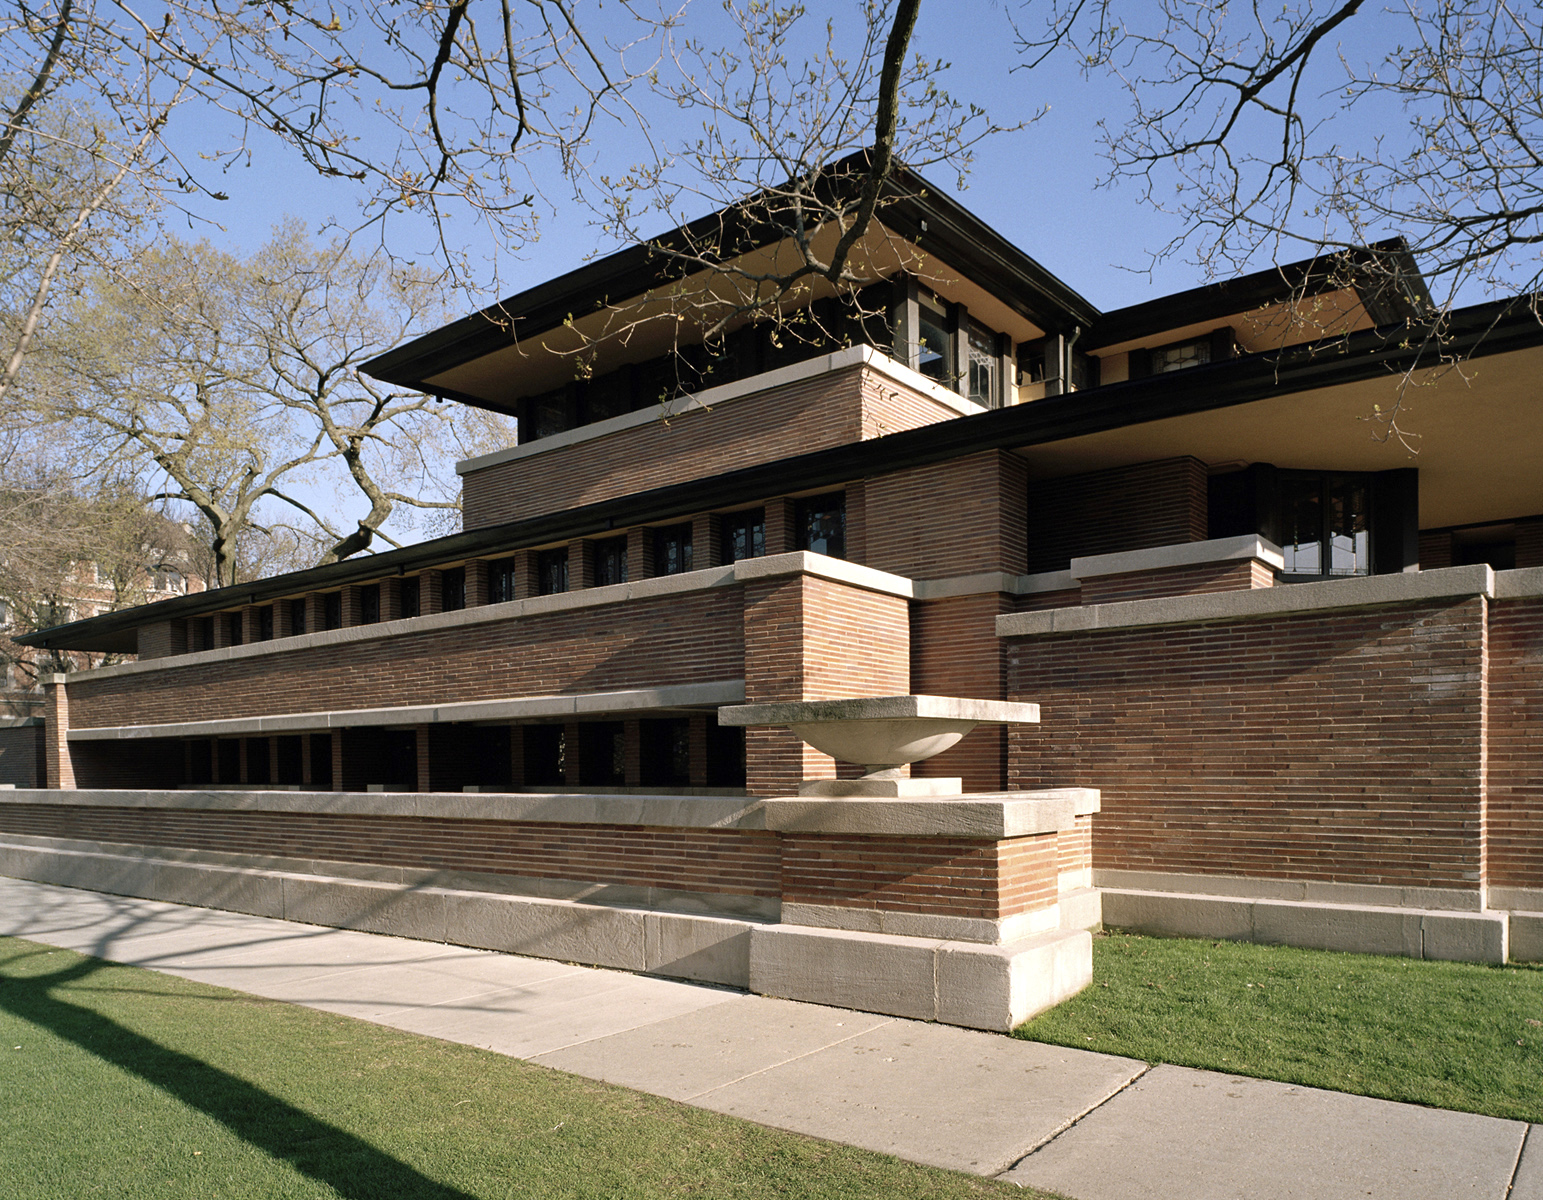 Frank Lloyd Wright's iconic Robie House reopens after major restoration